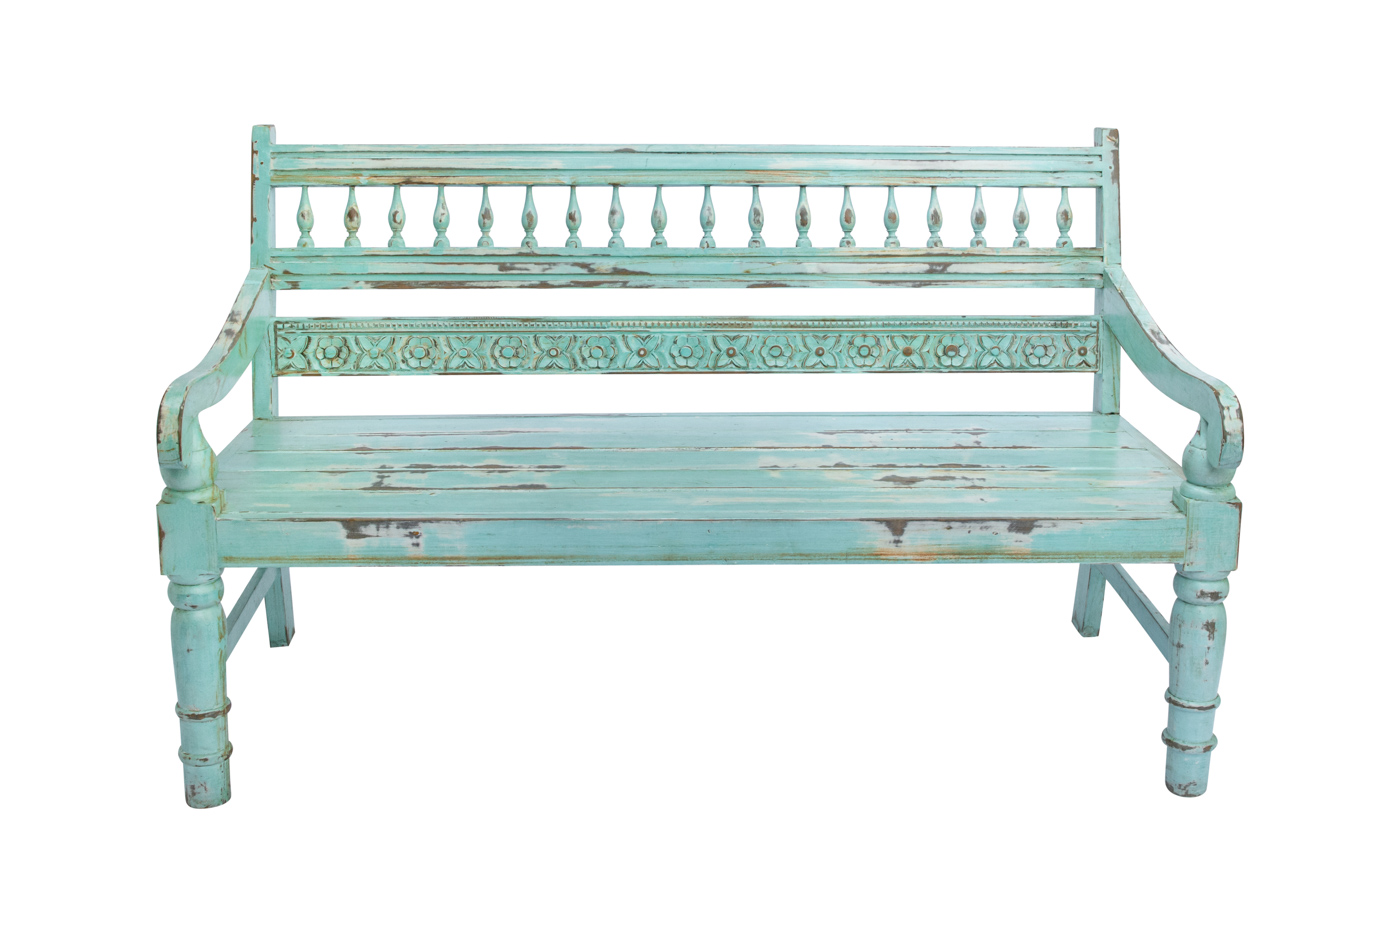 Balinese bench carved in mint green wood, 91 Cm